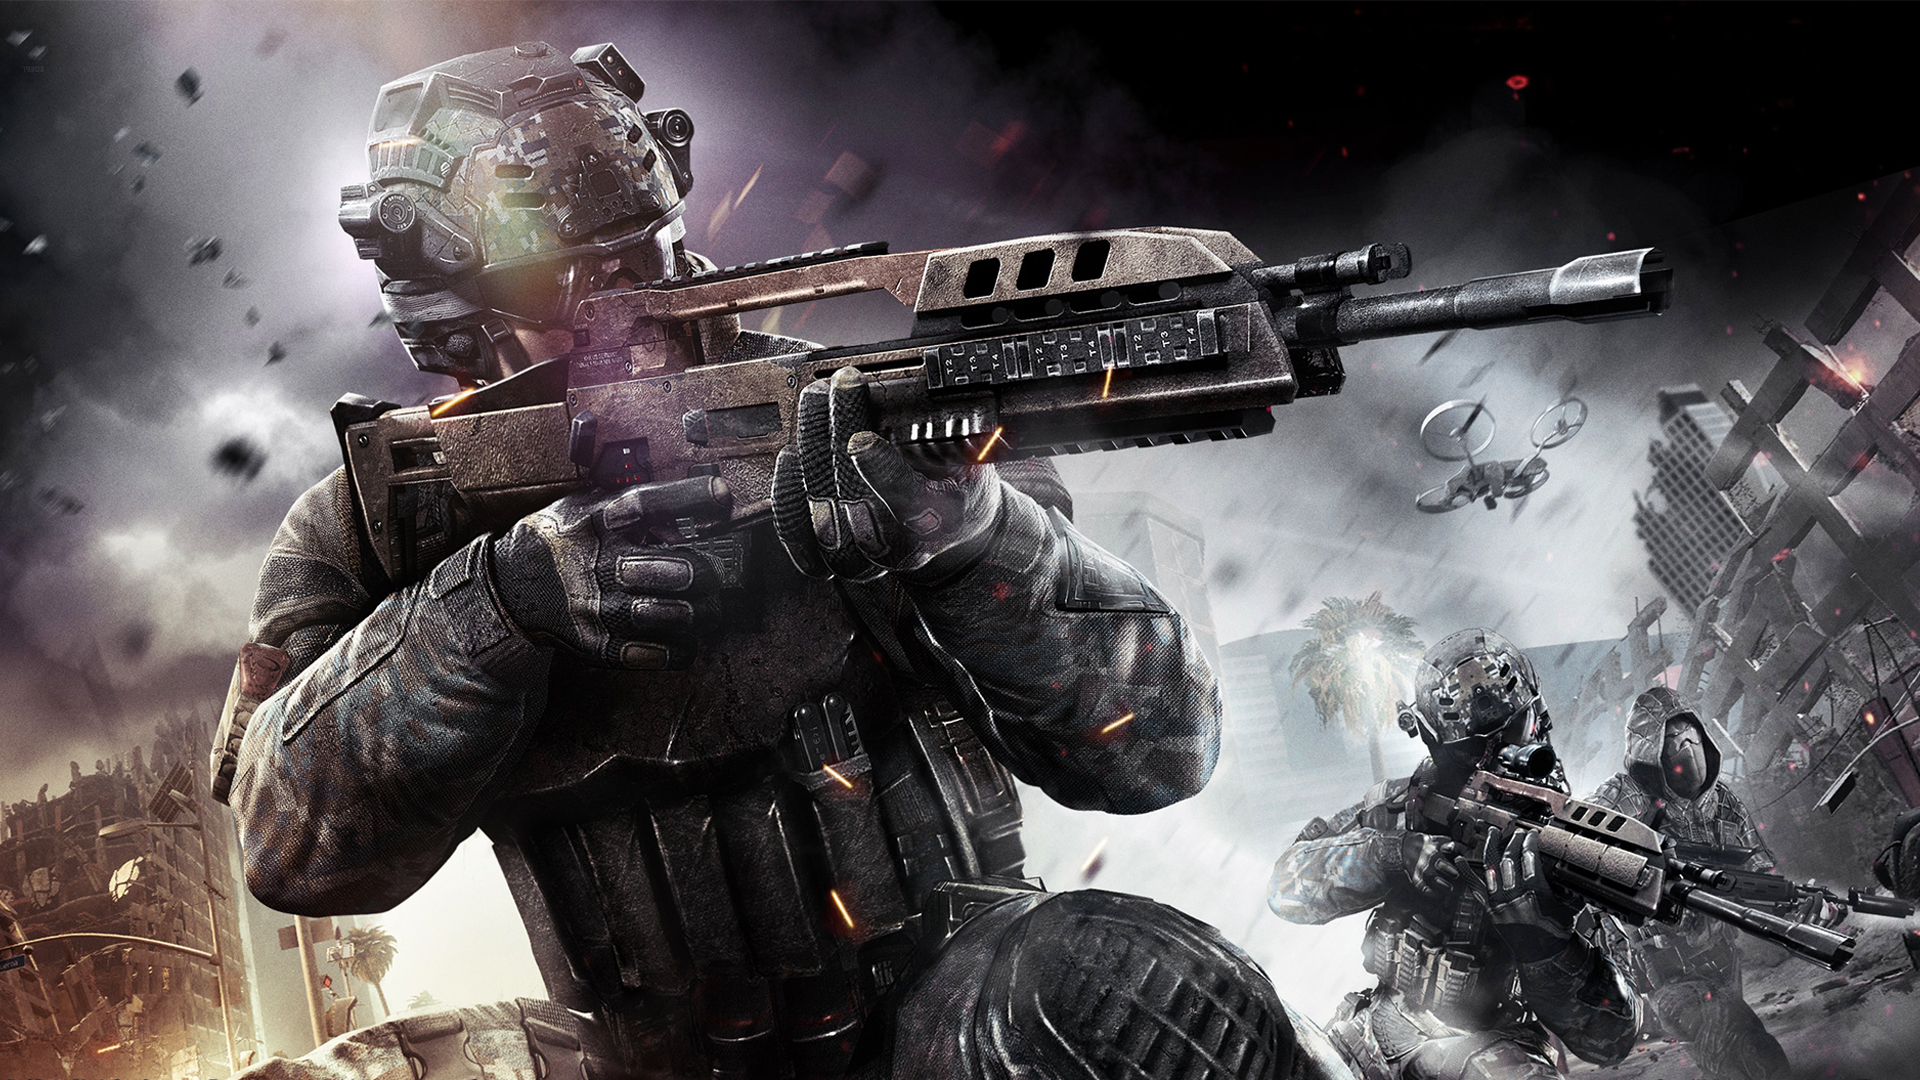 Call of Duty Black Ops 2 Video Game Wallpapers HD Wallpapers 1920x1080